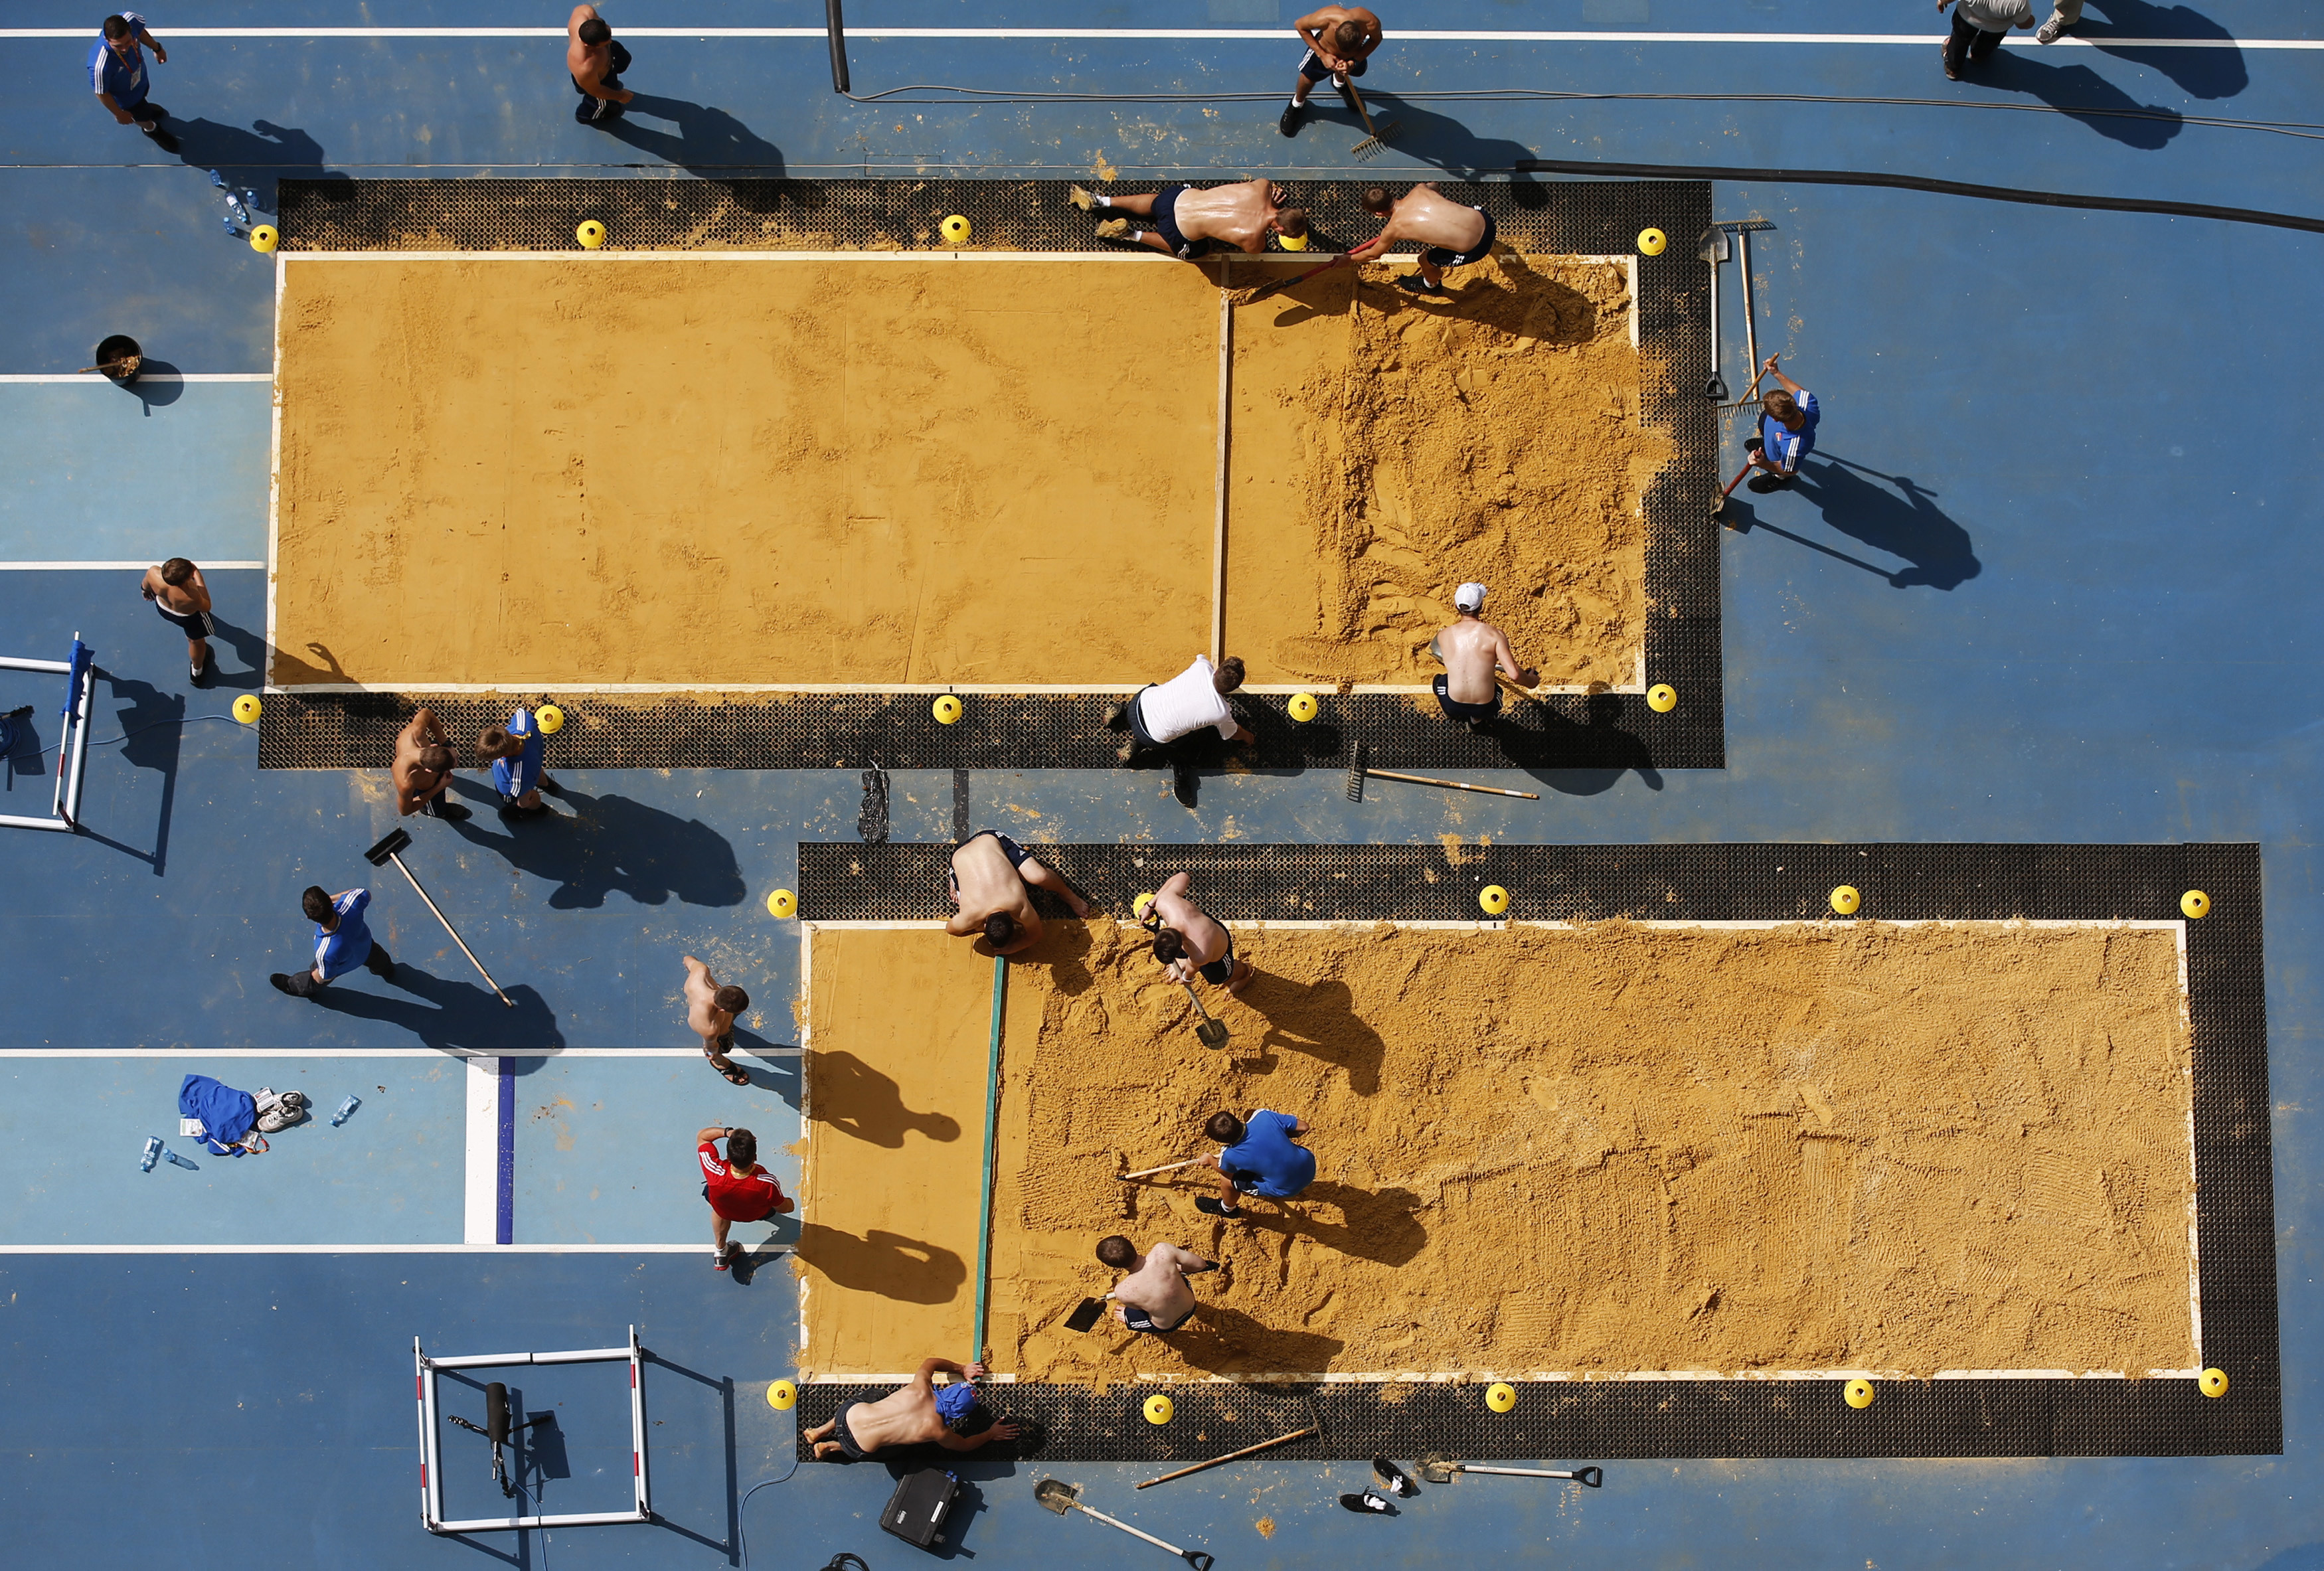 Volunteers prepare the sandpit for the 14th IAAF World Championships at the Olympic stadium in Moscow August 7, 2013. The event will be held from August 10 to 18.  REUTERS/Fabrizio Bensch (RUSSIA - Tags: SPORT ATHLETICS TPX IMAGES OF THE DAY) - RTX12COT